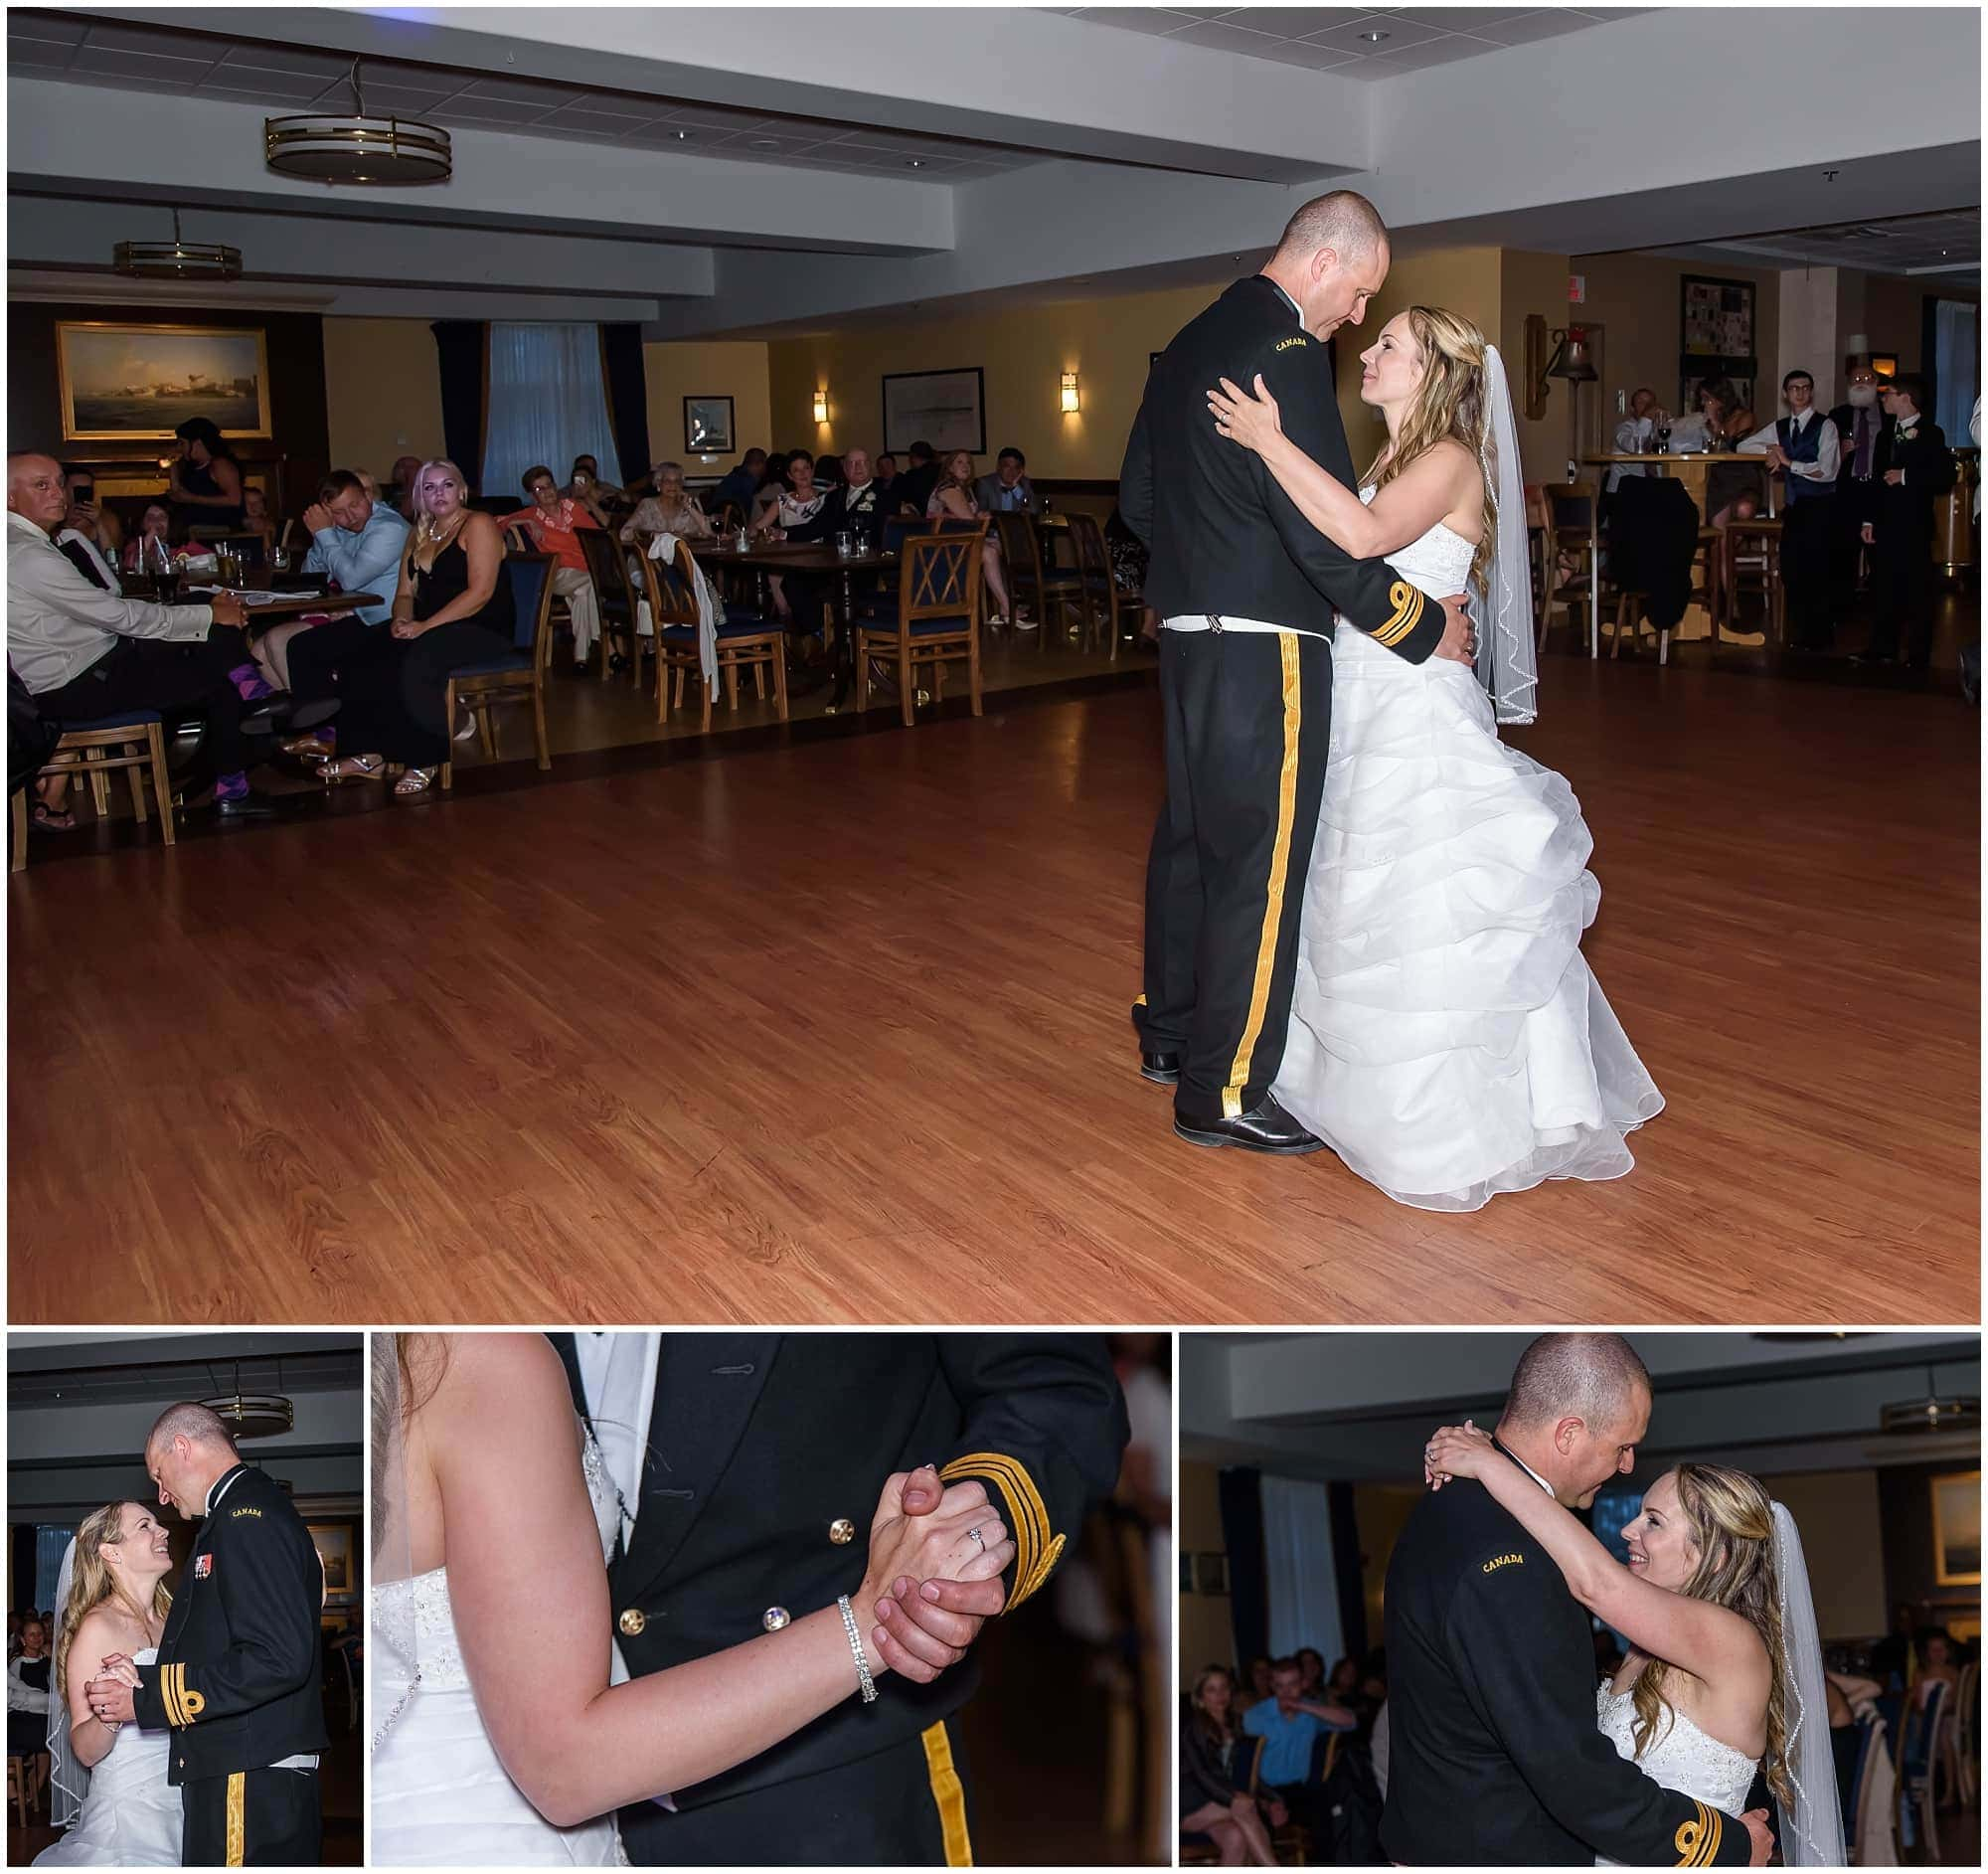 The bride and groom have their first wedding dance during their wedding reception at Juno Tower in Halifax, NS.